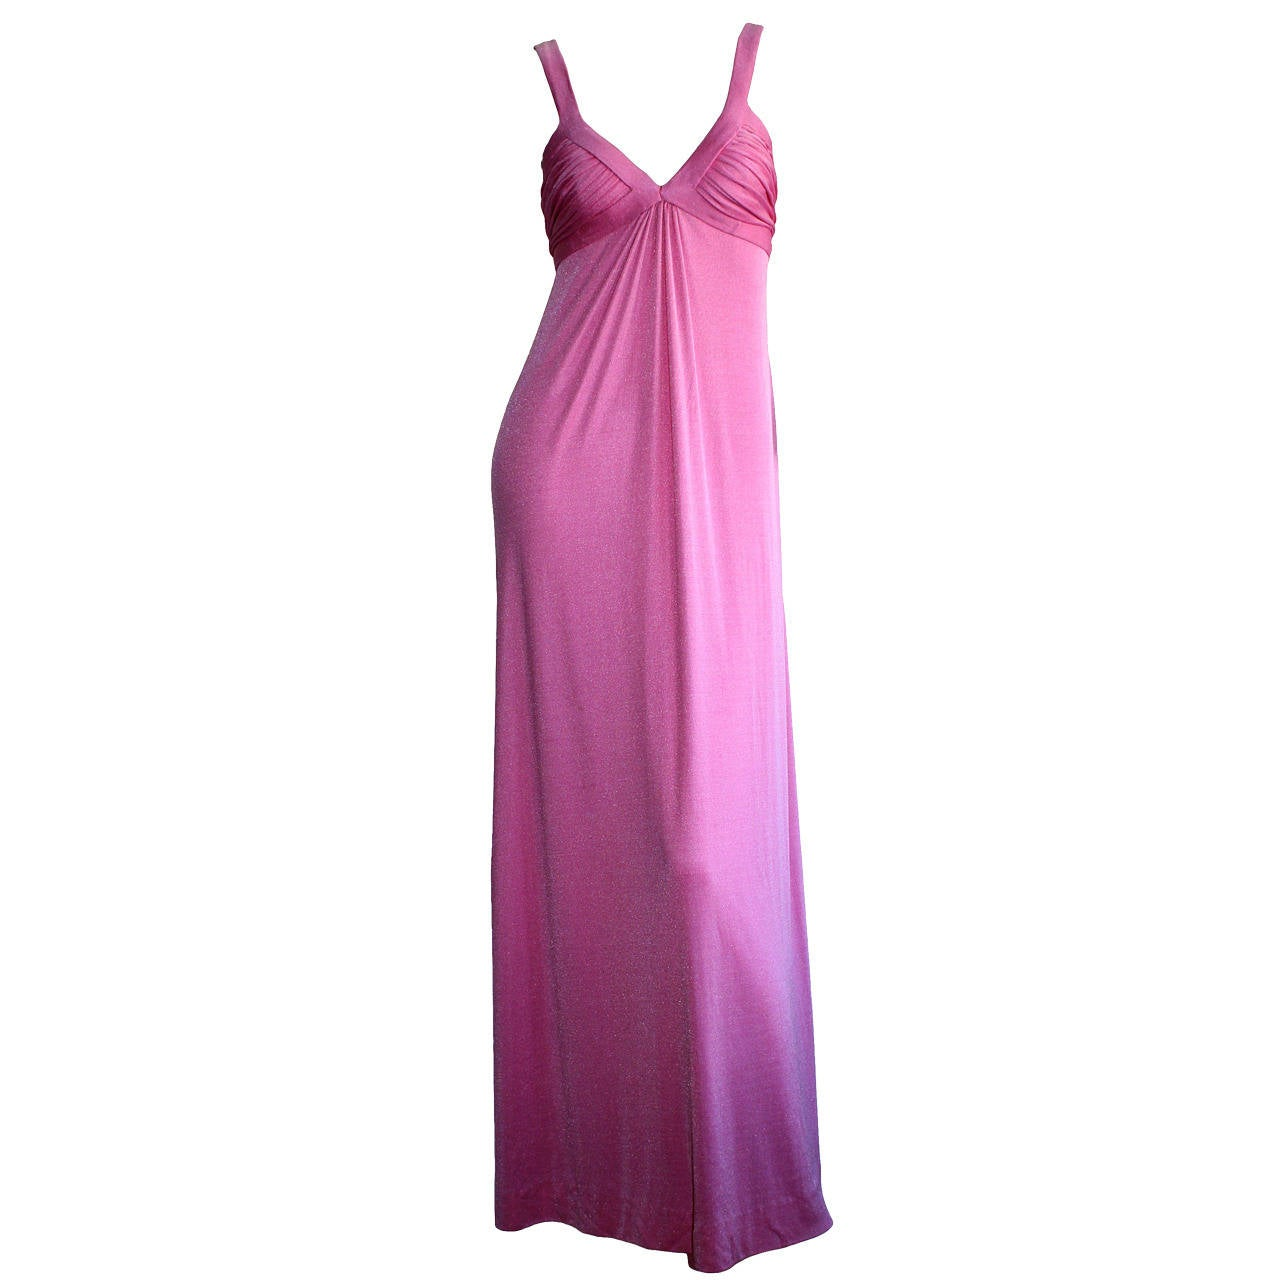 Loris Azzaro 1970s Silk Jersey Vintage Pink Empire Dress Gown For Sale